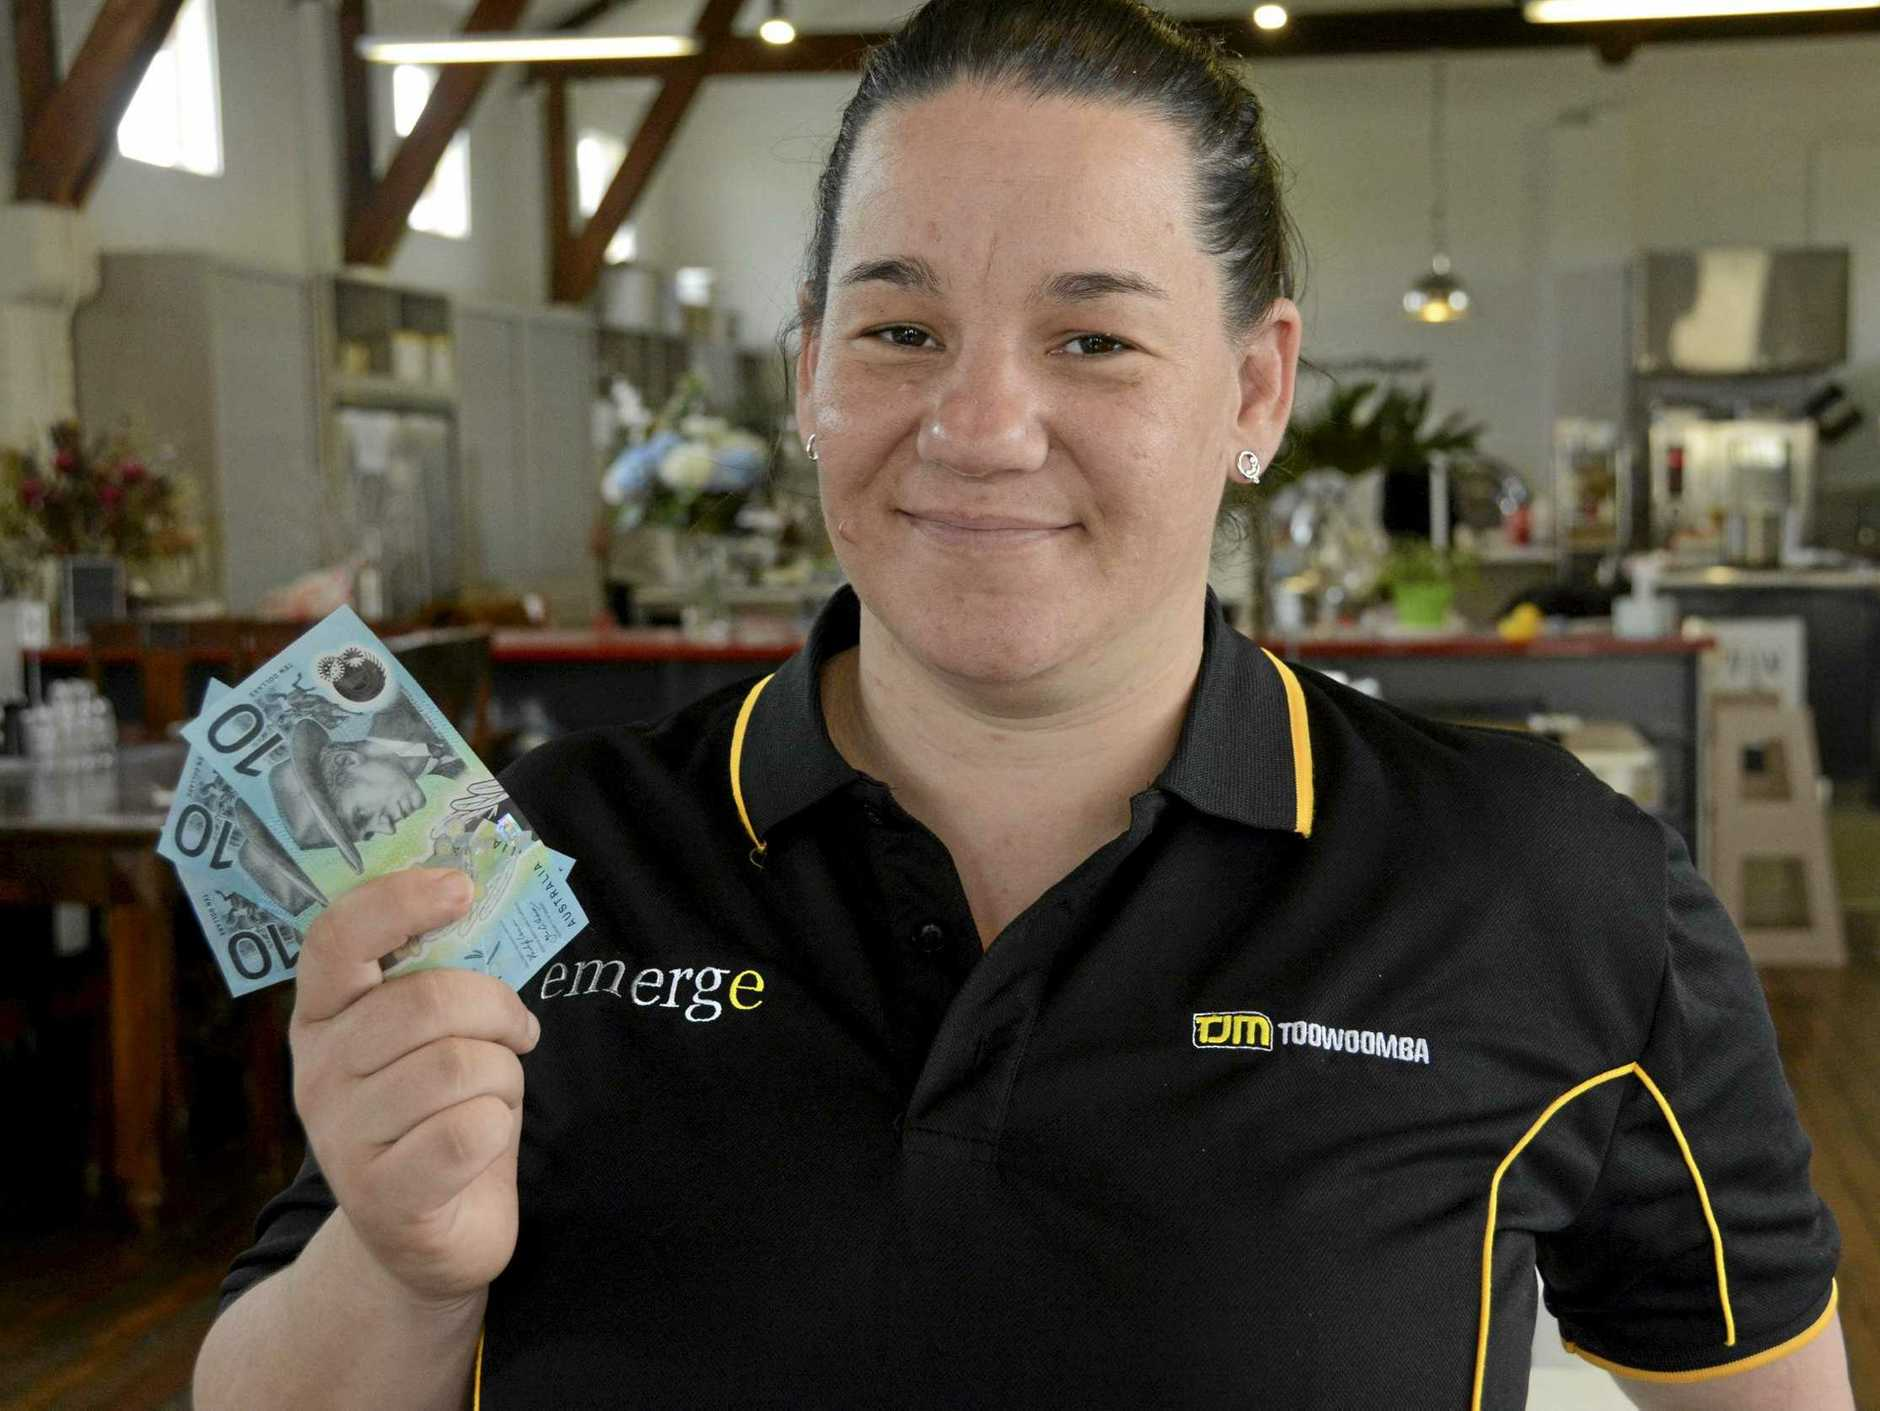 GENEROUS: Emerge Cafe's Jen Shaw said a homeless man's amazing donation of $30, all of his money, to her disadvantaged youth support organisation was a reminder of humanity's goodness.